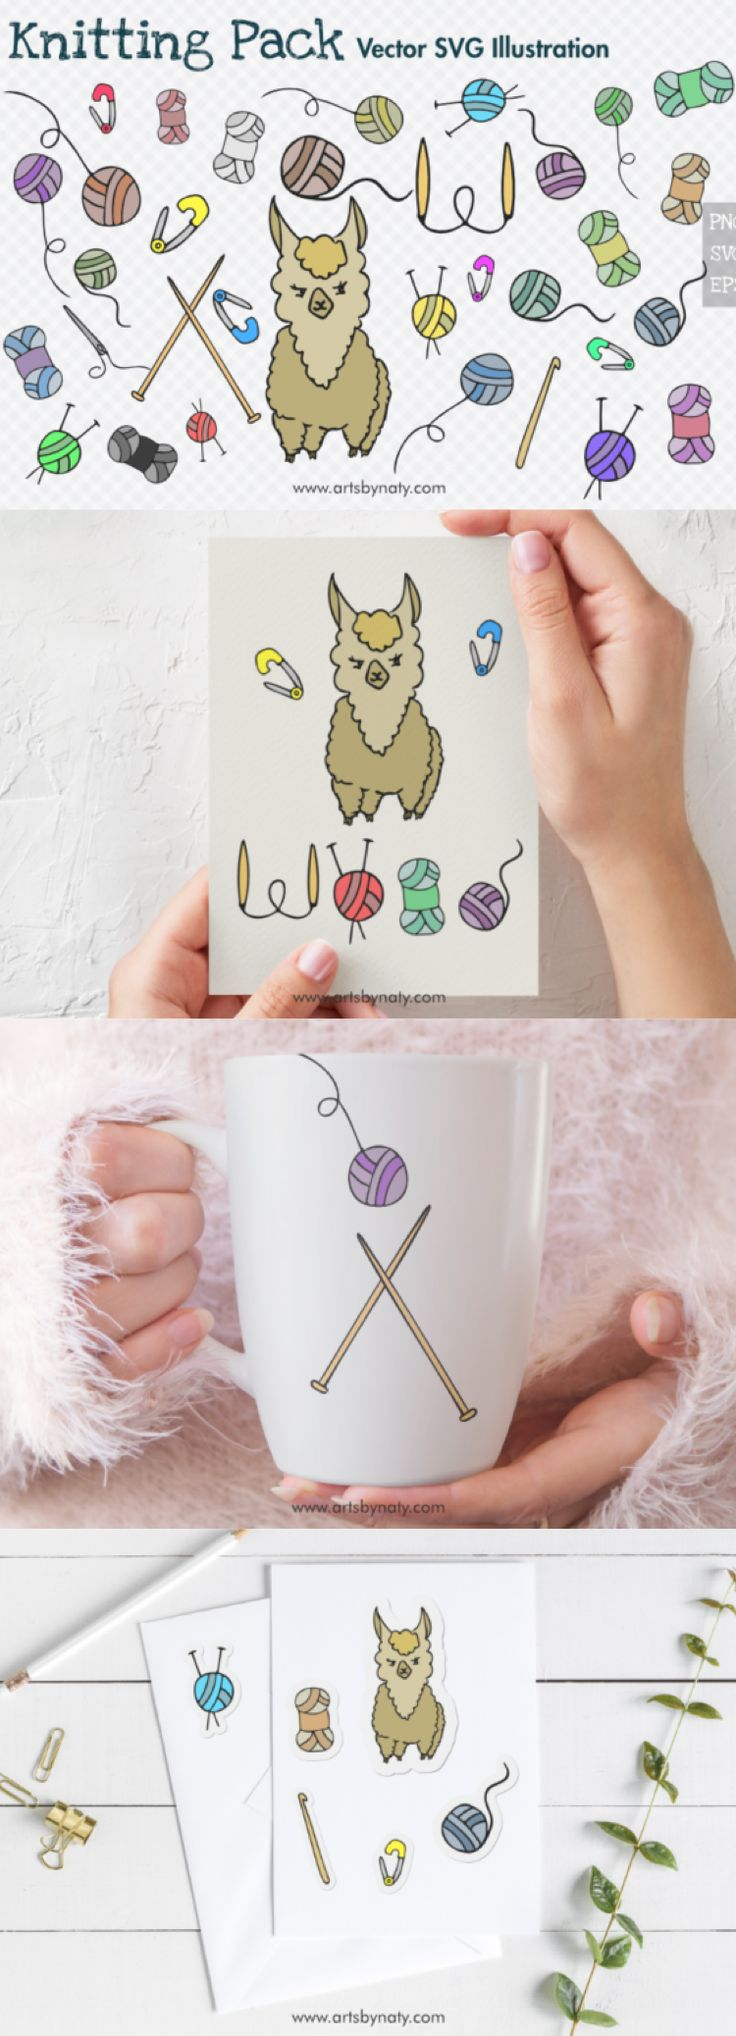 Knitting Cute Vector Illustration Pack. (Graphic) by ...